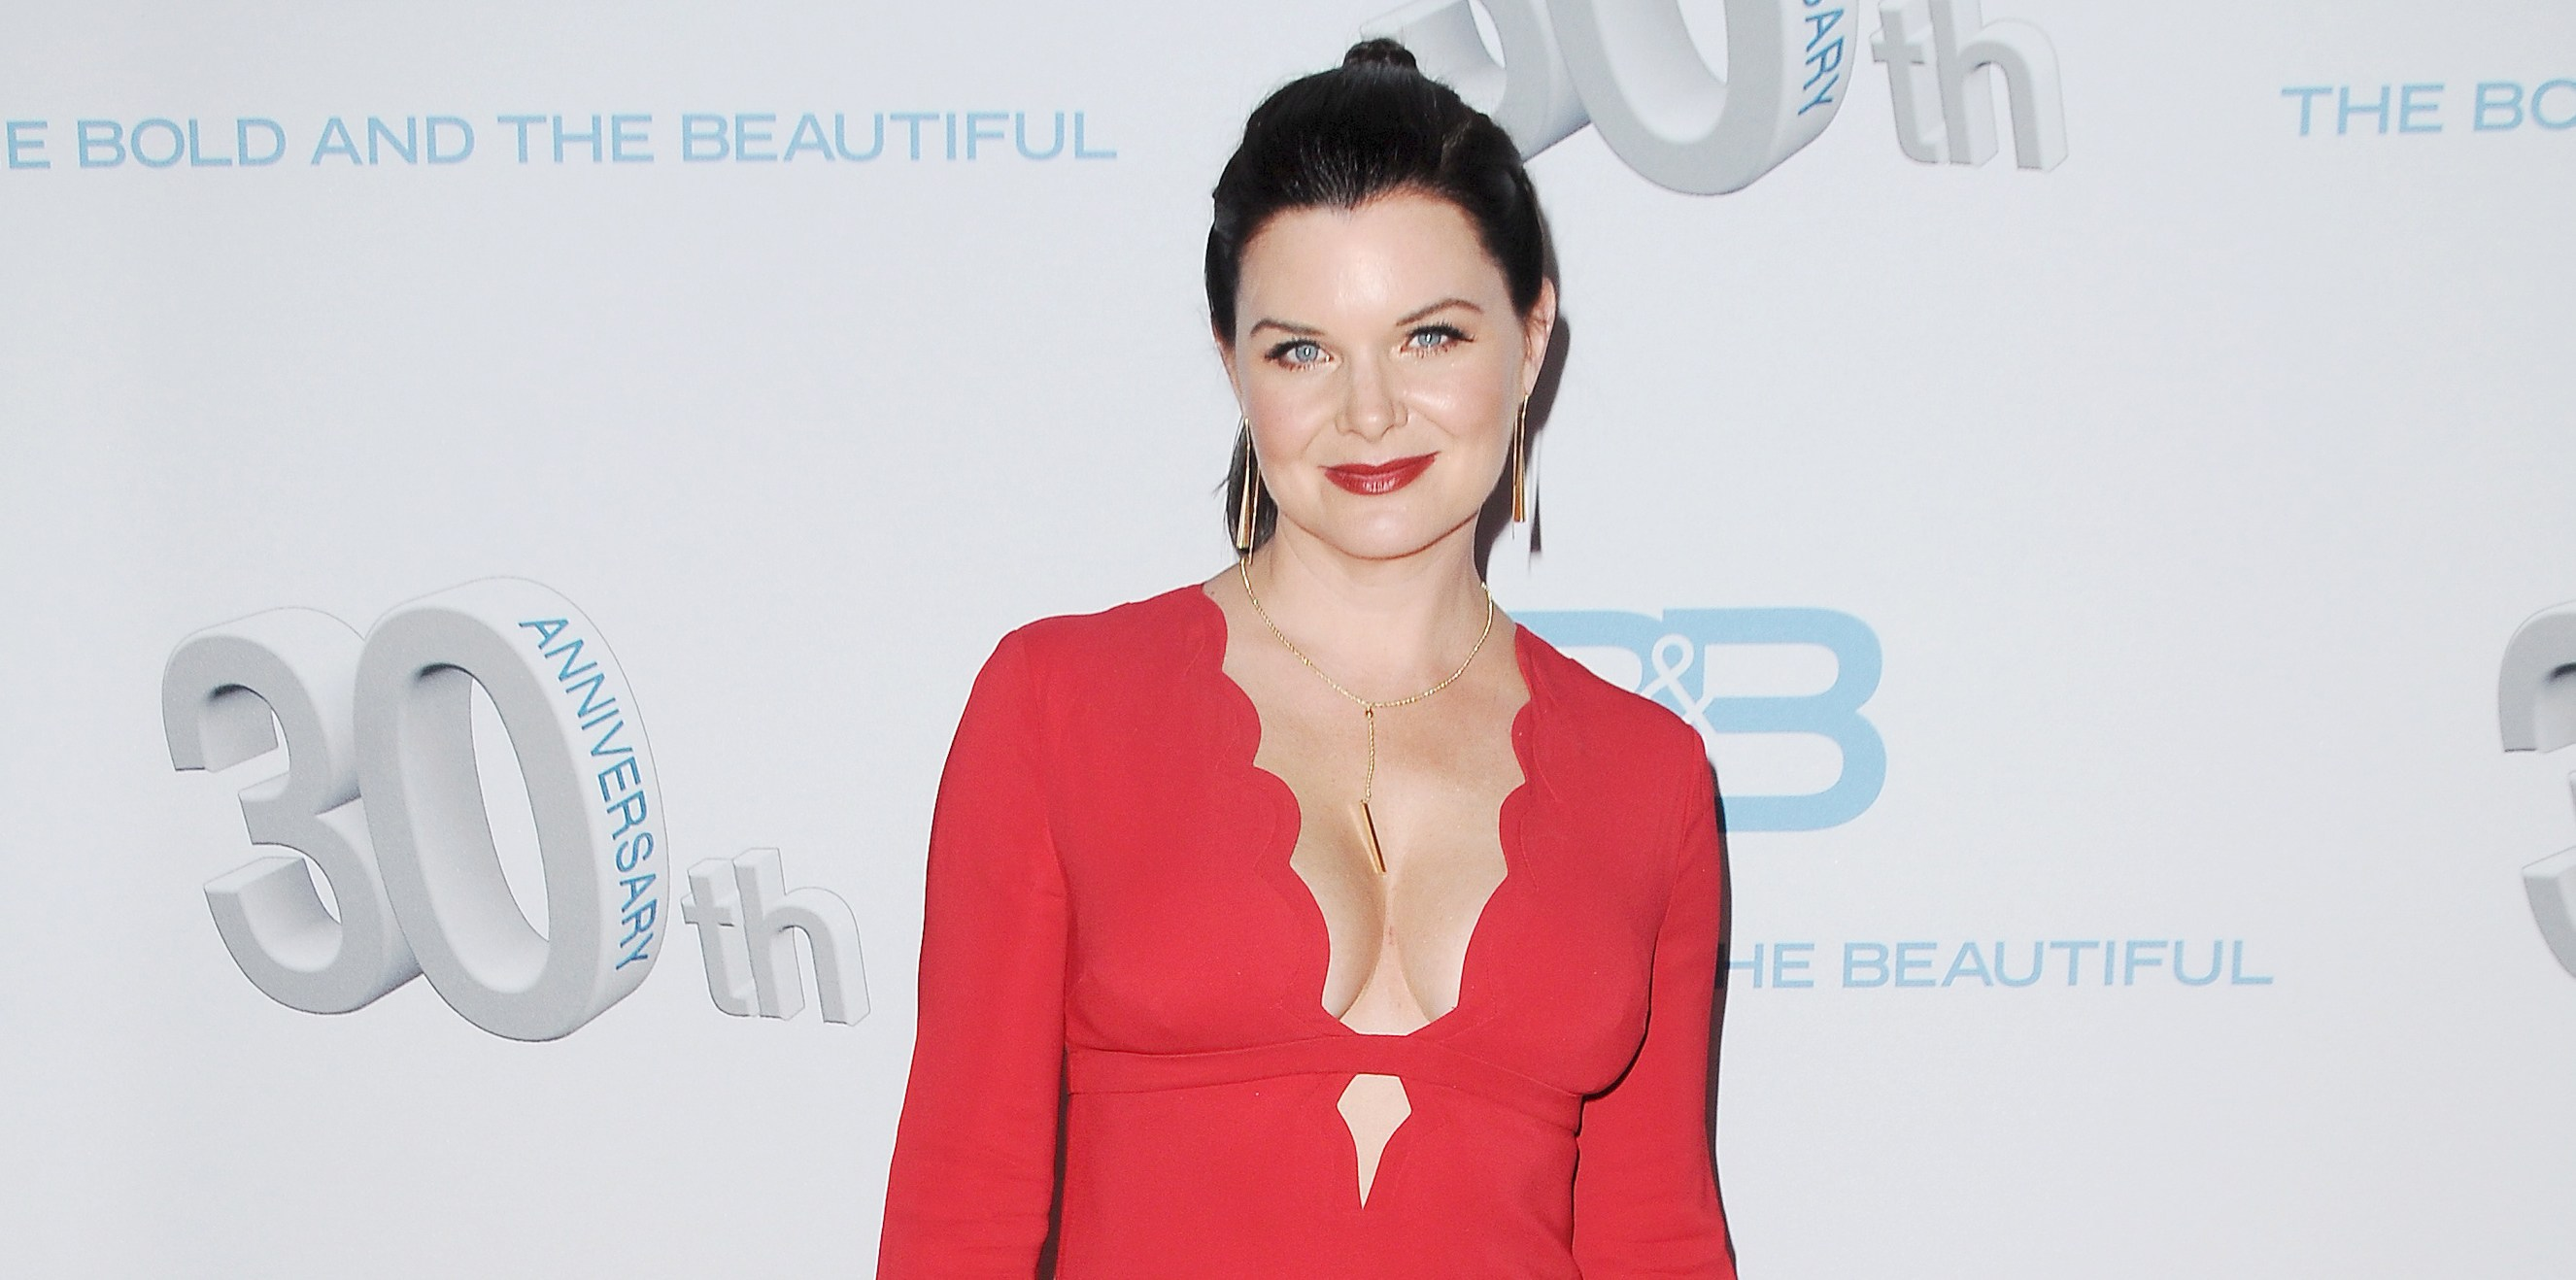 THE BOLD AND THE BEAUTIFUL Celebrate 30 Years Arrivals